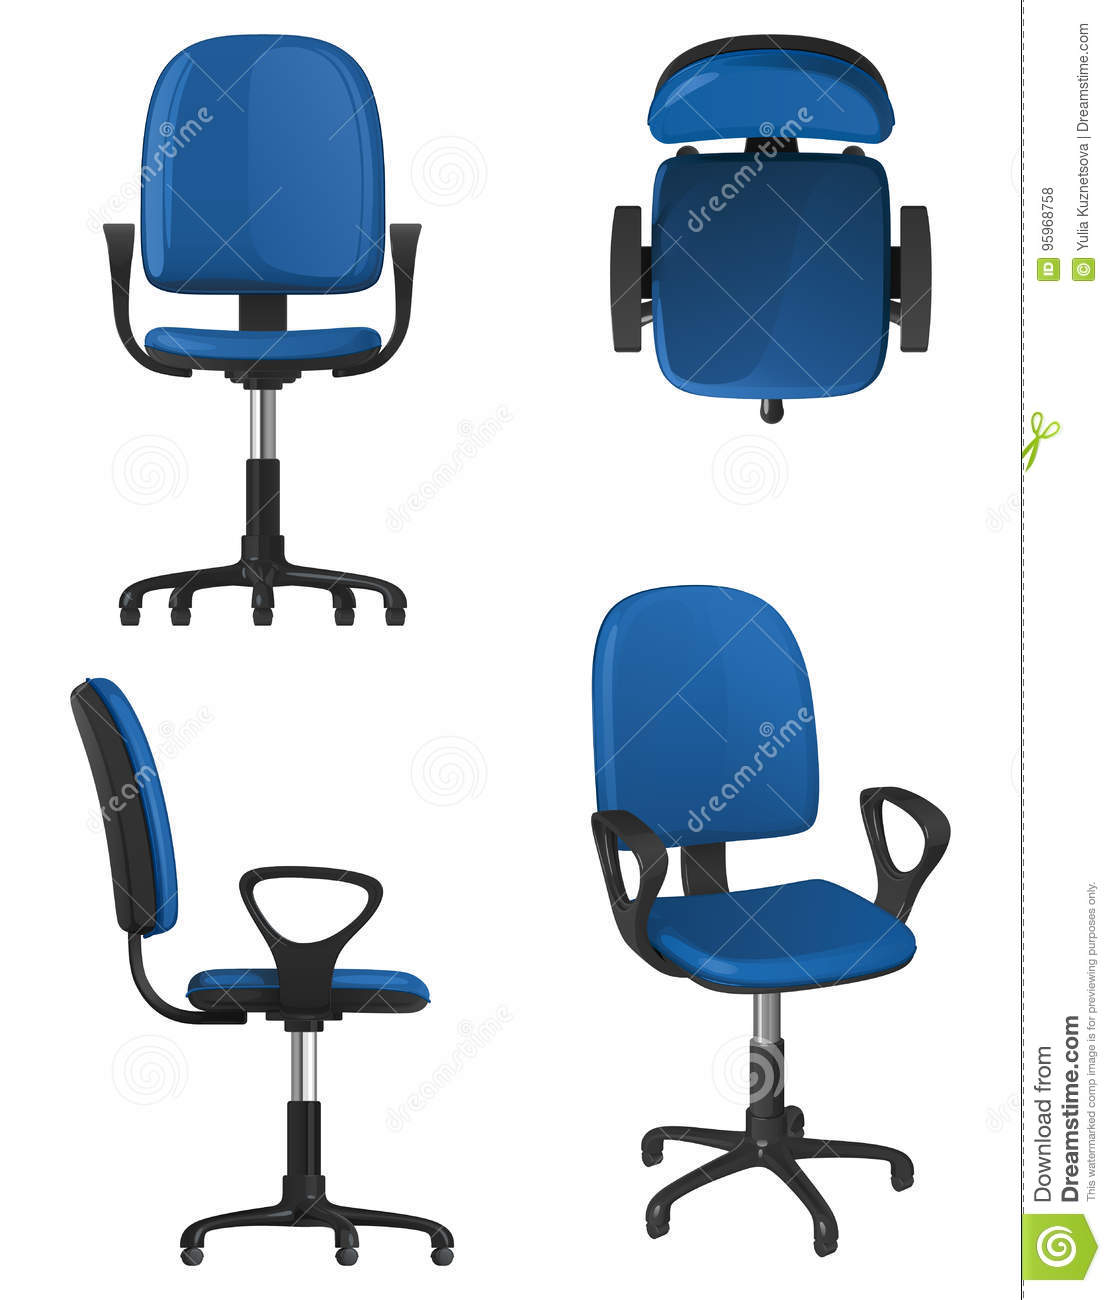 A Twisting Office Chair On Wheels With A Blue Upholstery Seat And Backrest Stock Vector Illustration Of Furniture View 95968758